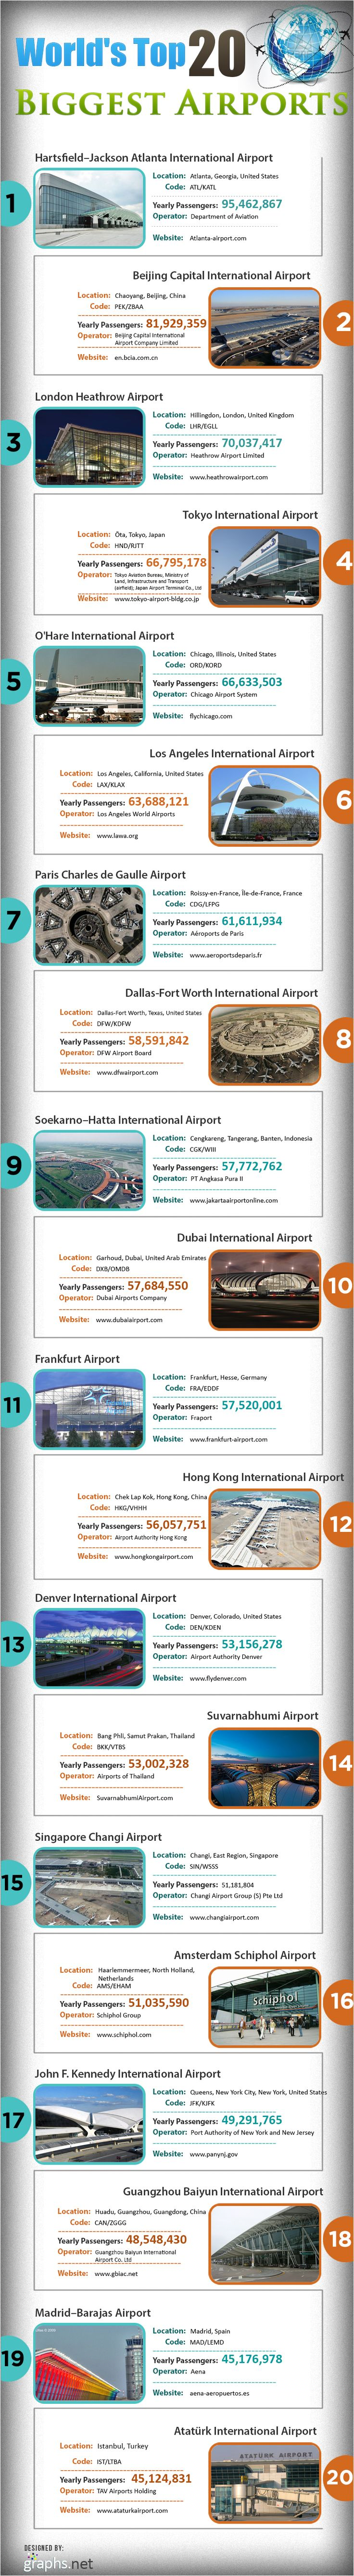 World's Top 20 Biggest Airportsgraphic #airport #biggestairports #top